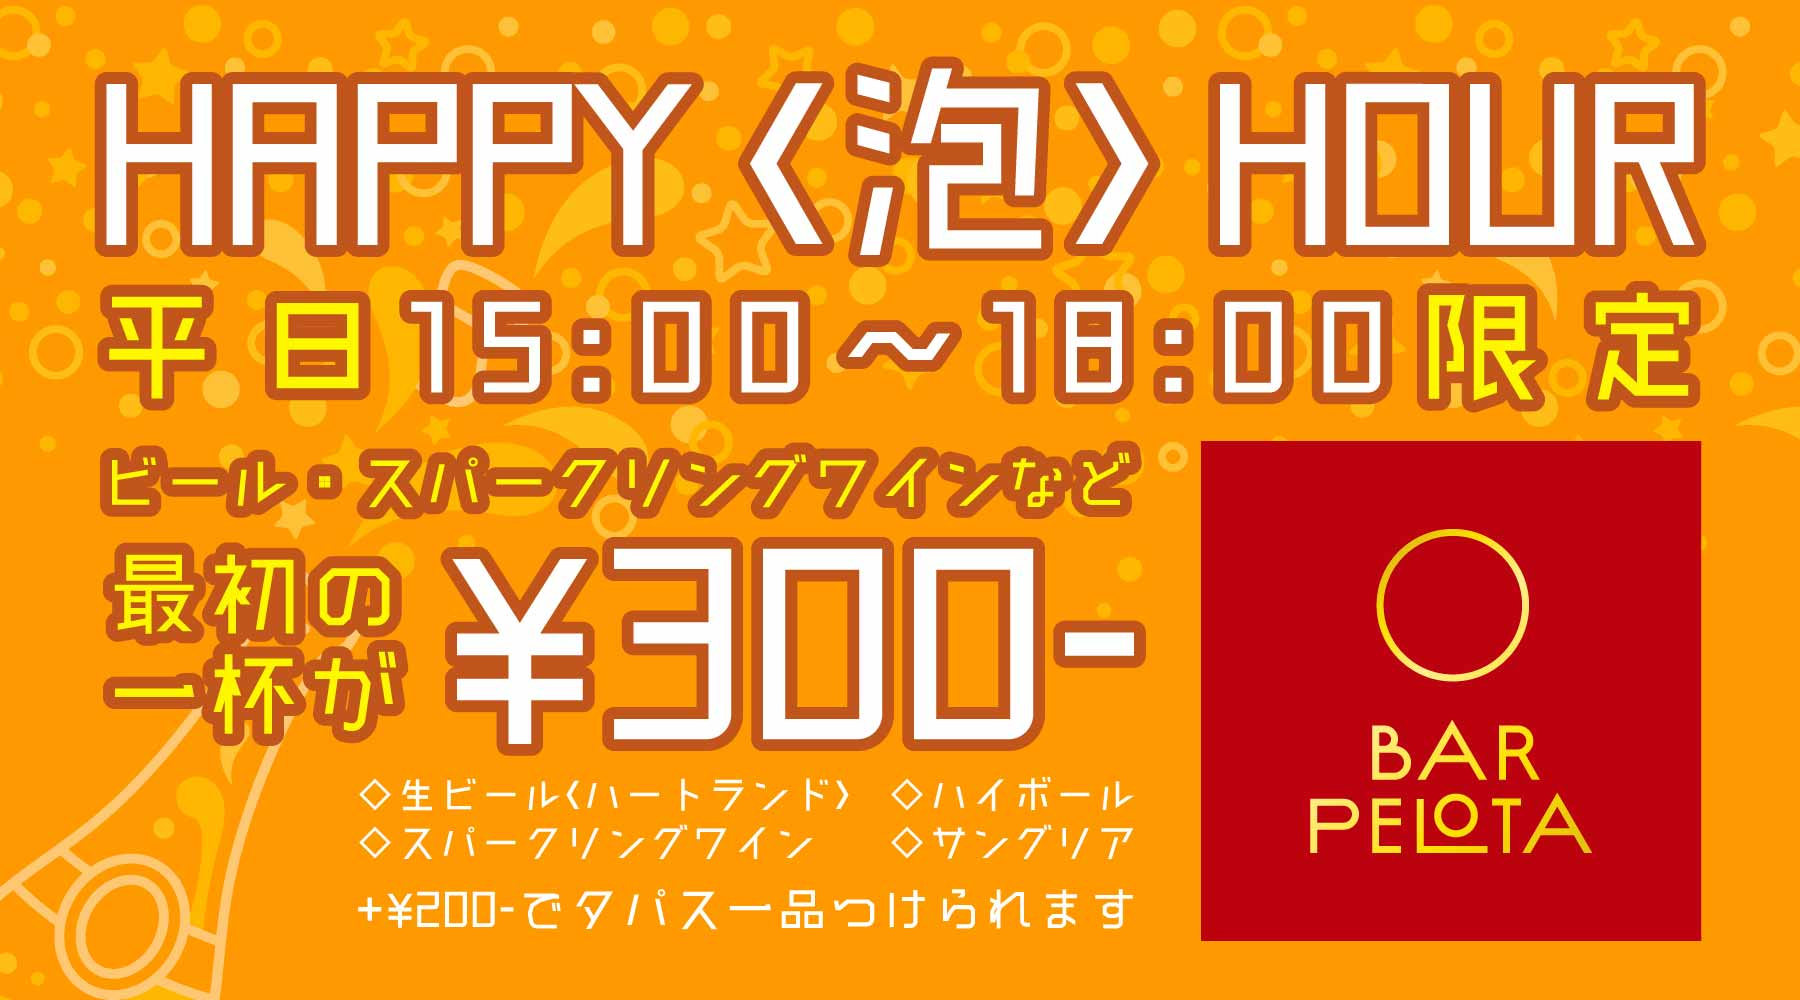 BAR PELOTA HAPPY 泡 HOUR 平日15:00〜18:00限定